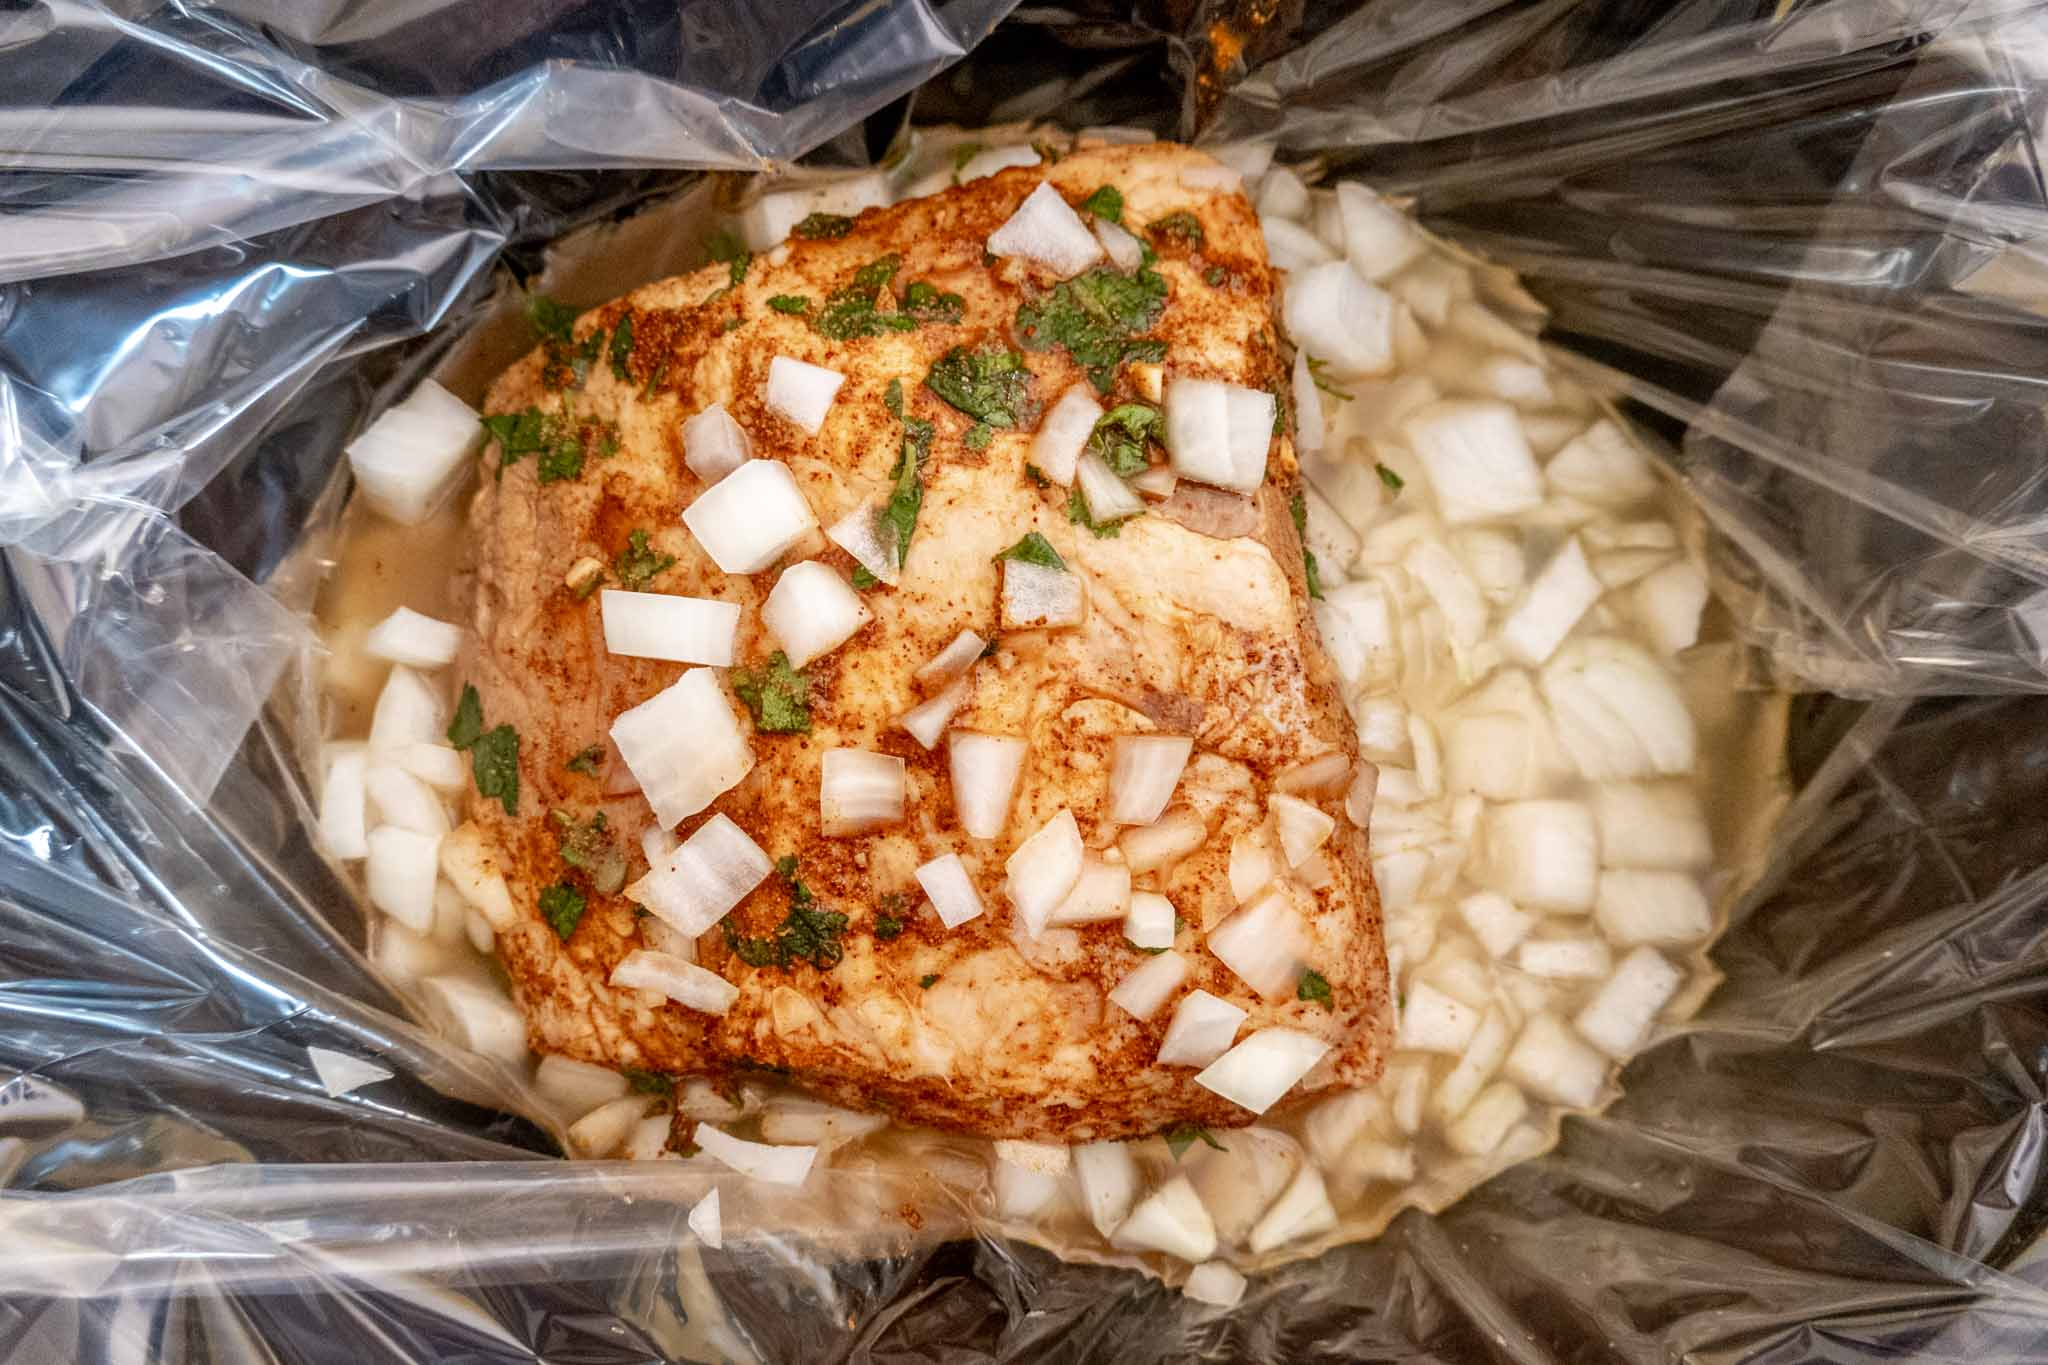 Ingredients for cilantro lime pork in a slow cooker